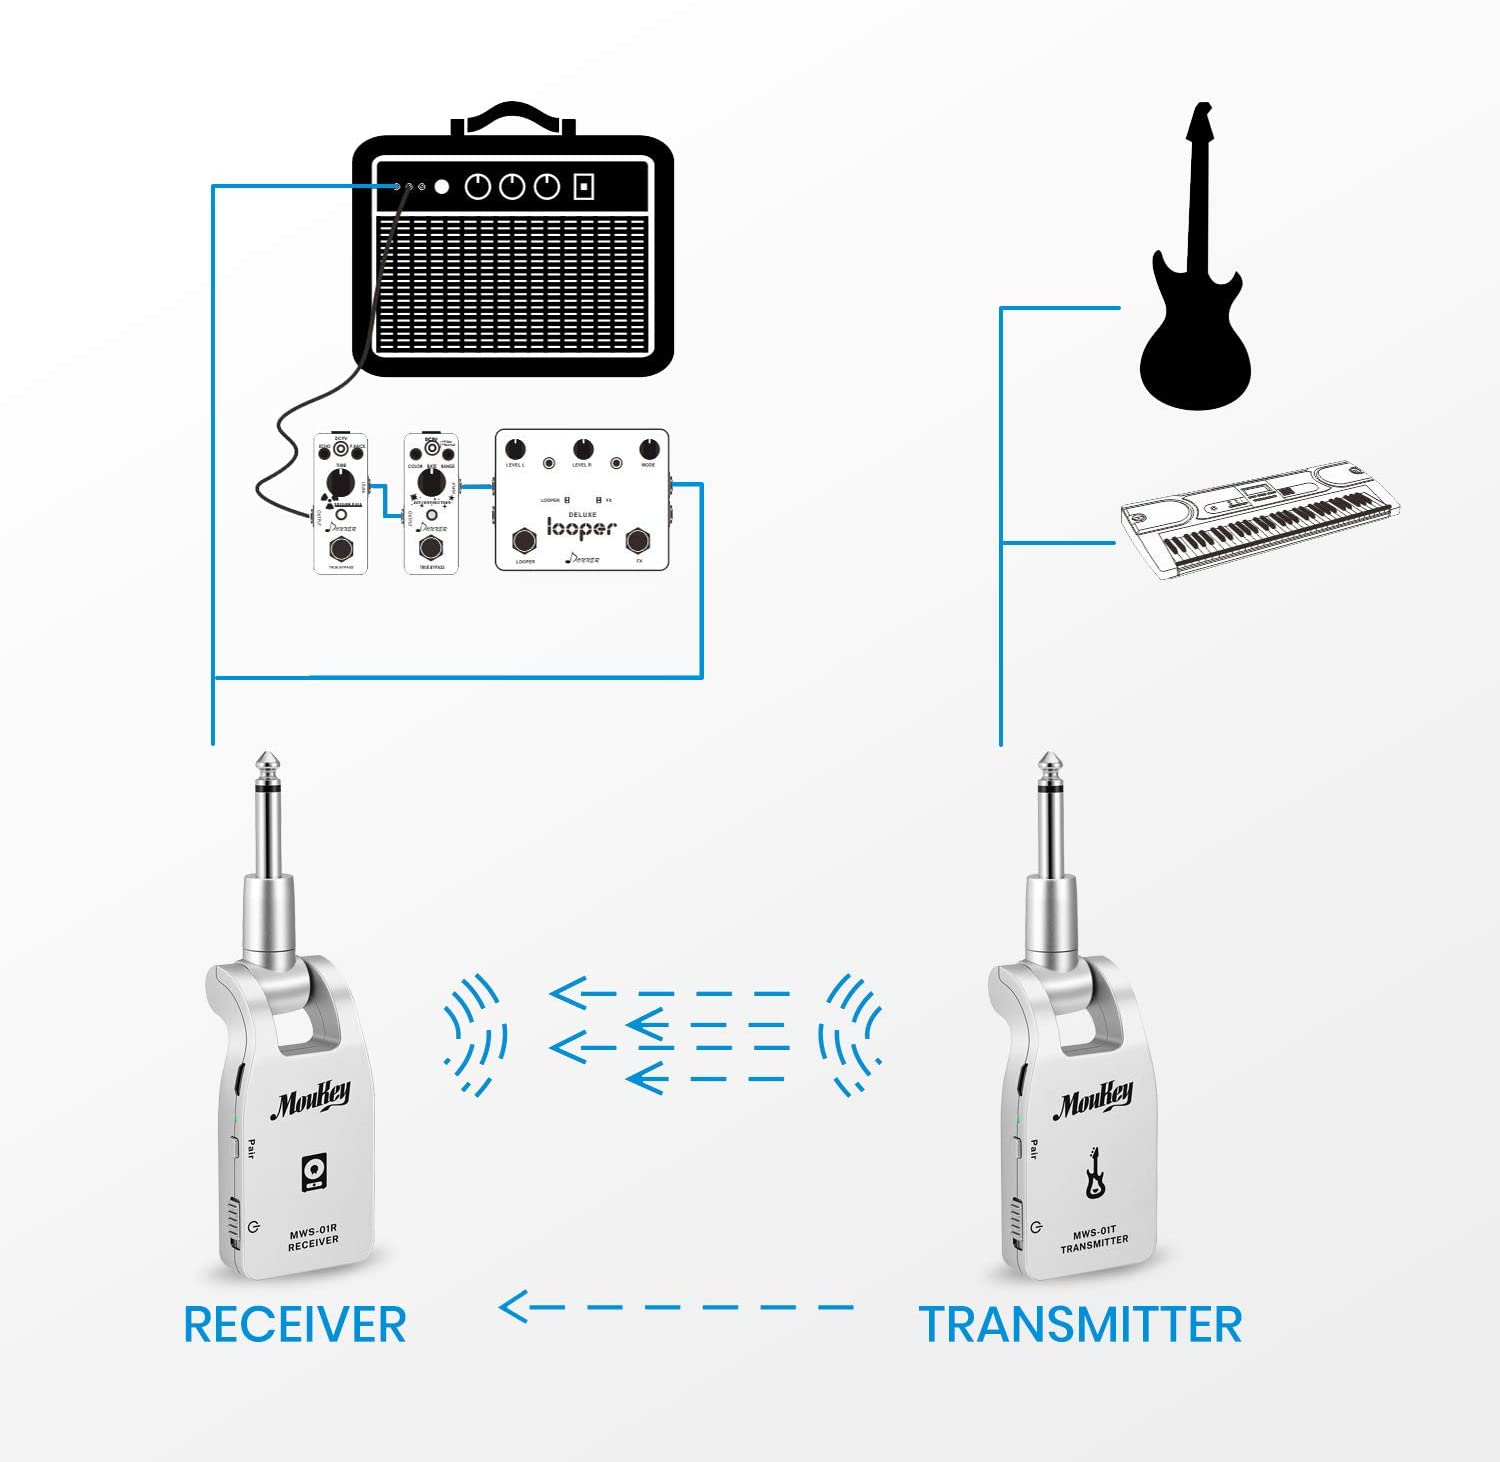 6 Channels Silver Moukey MWS-01 2.4GHZ Wireless Guitar System Audio Guitar System for Electric Guitar Bass Rechargeable Digital Transmitter Receiver Set